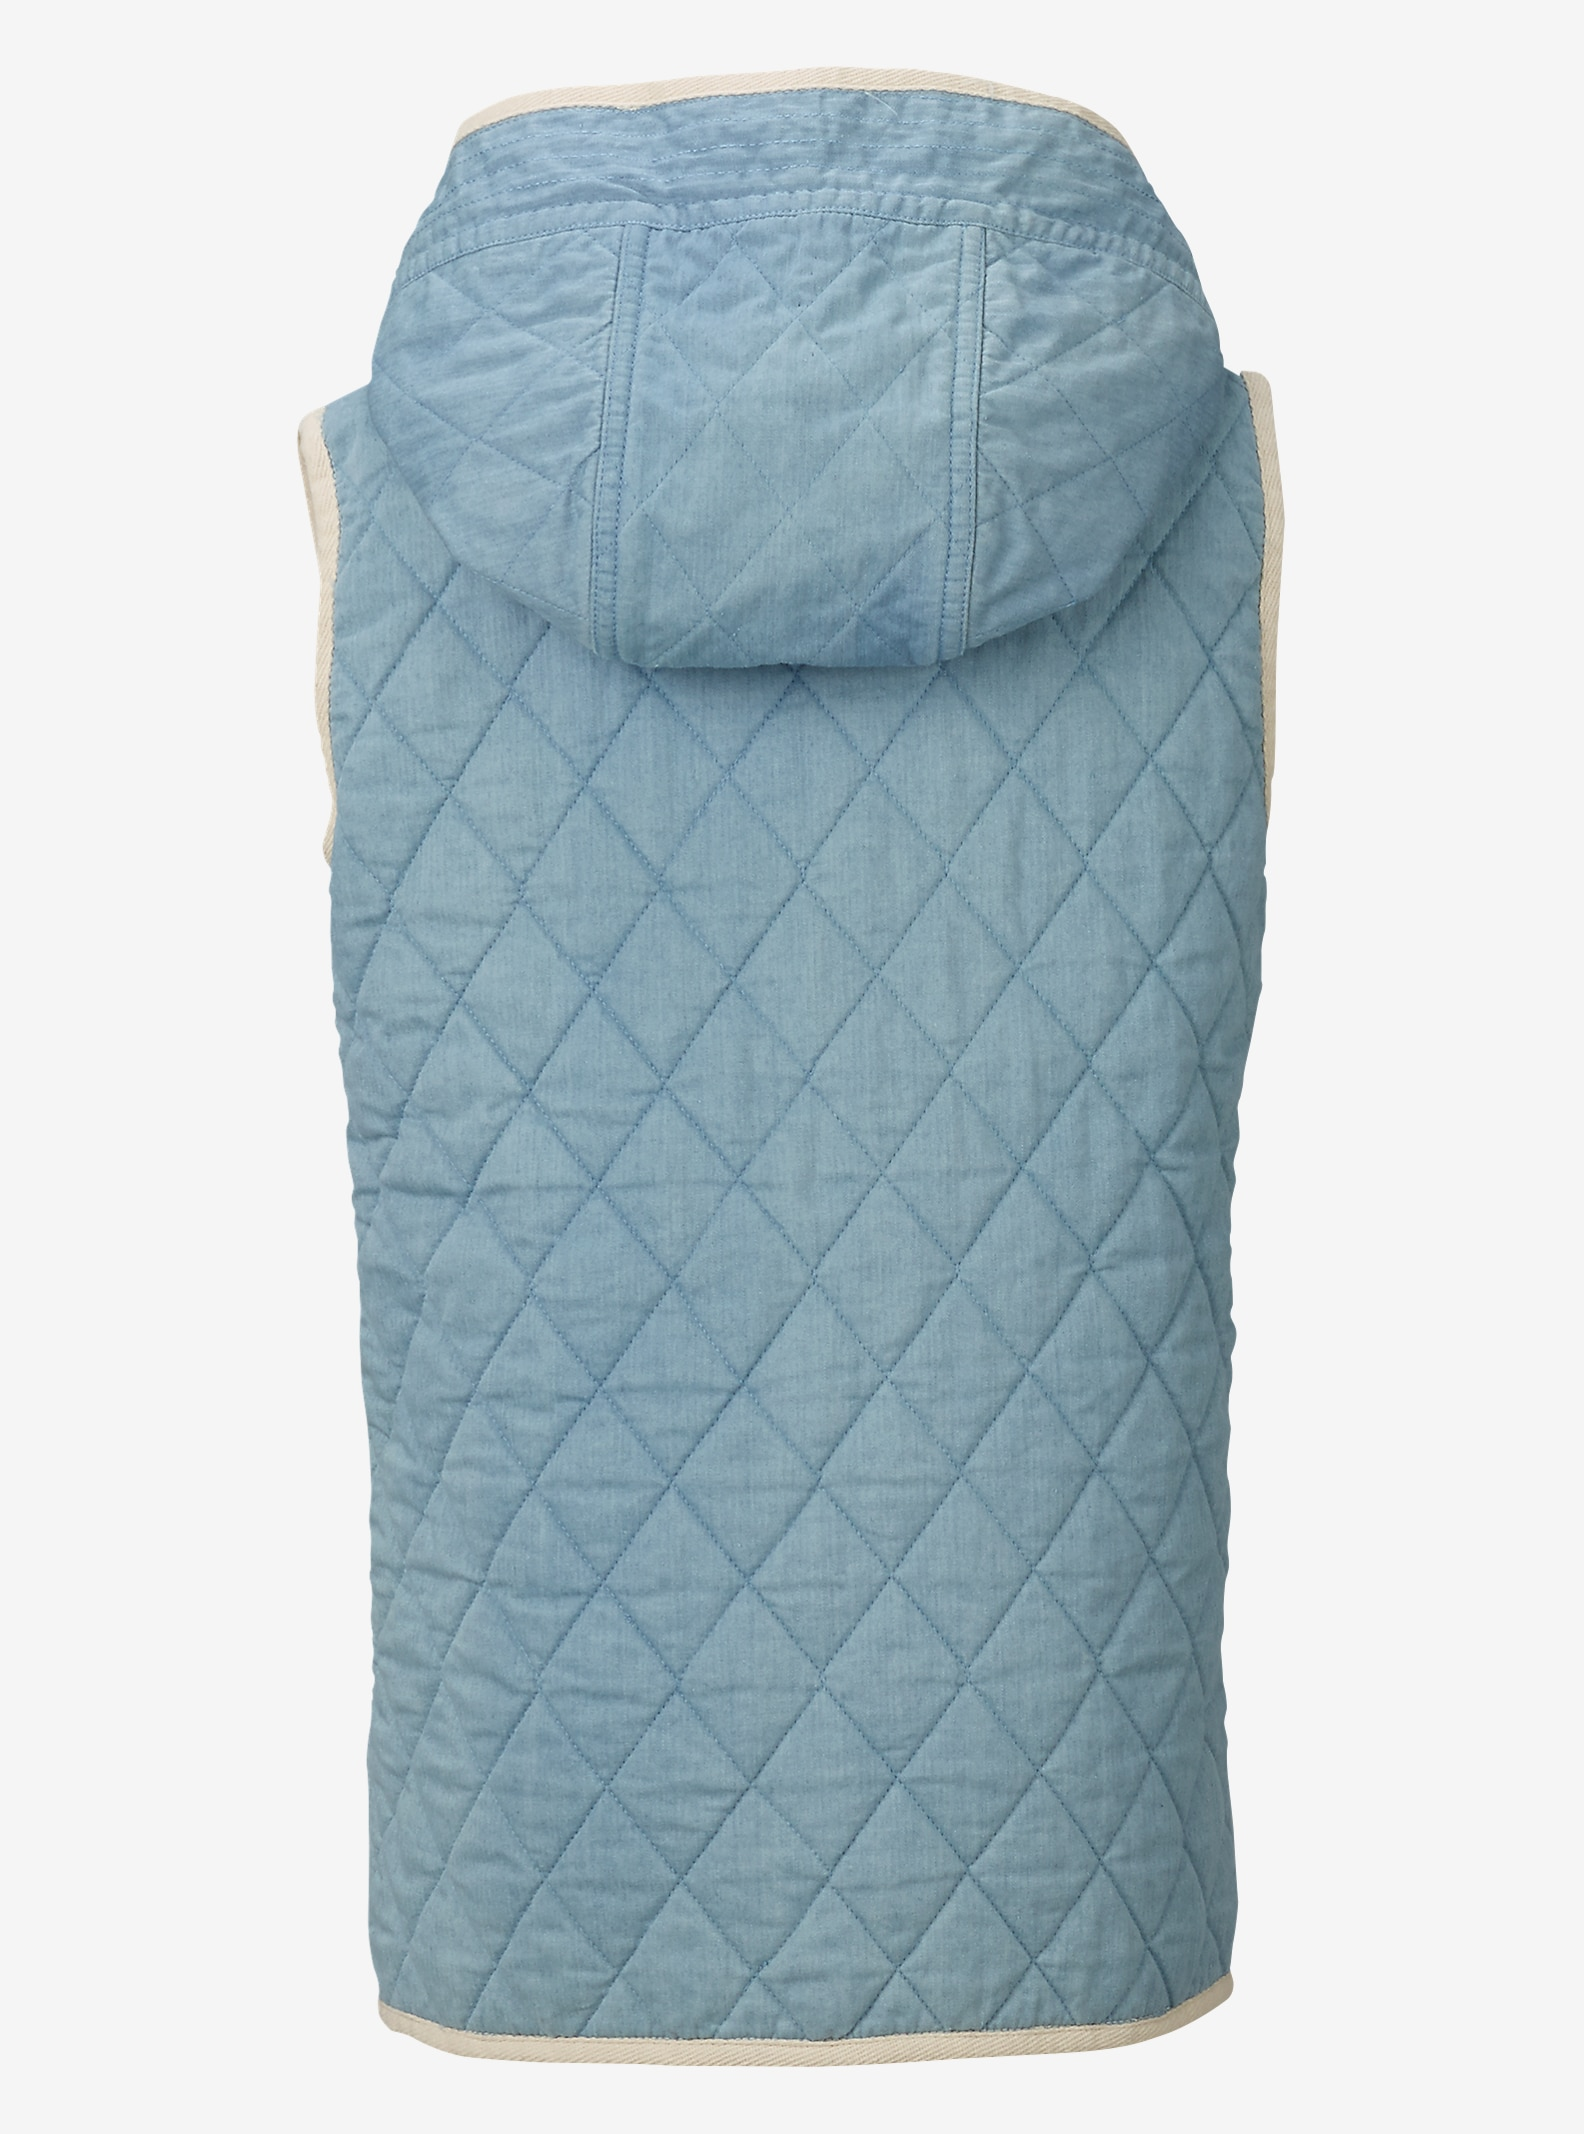 Burton Girl's Gemmi Vest shown in Indigo Herringbone